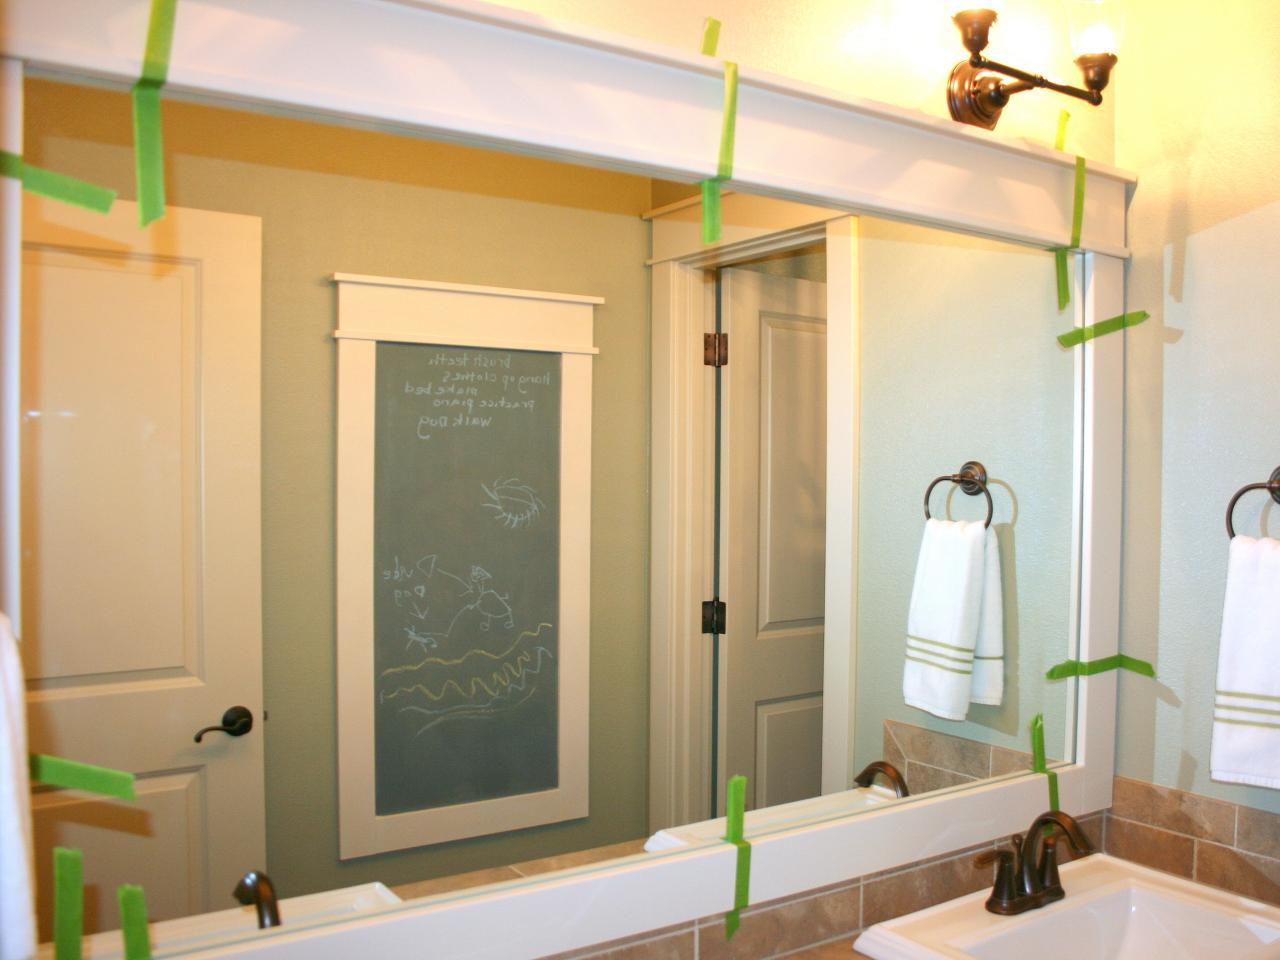 How to Create a DIY Mirror Frame for Your Bathroom - Combine the mirror frame